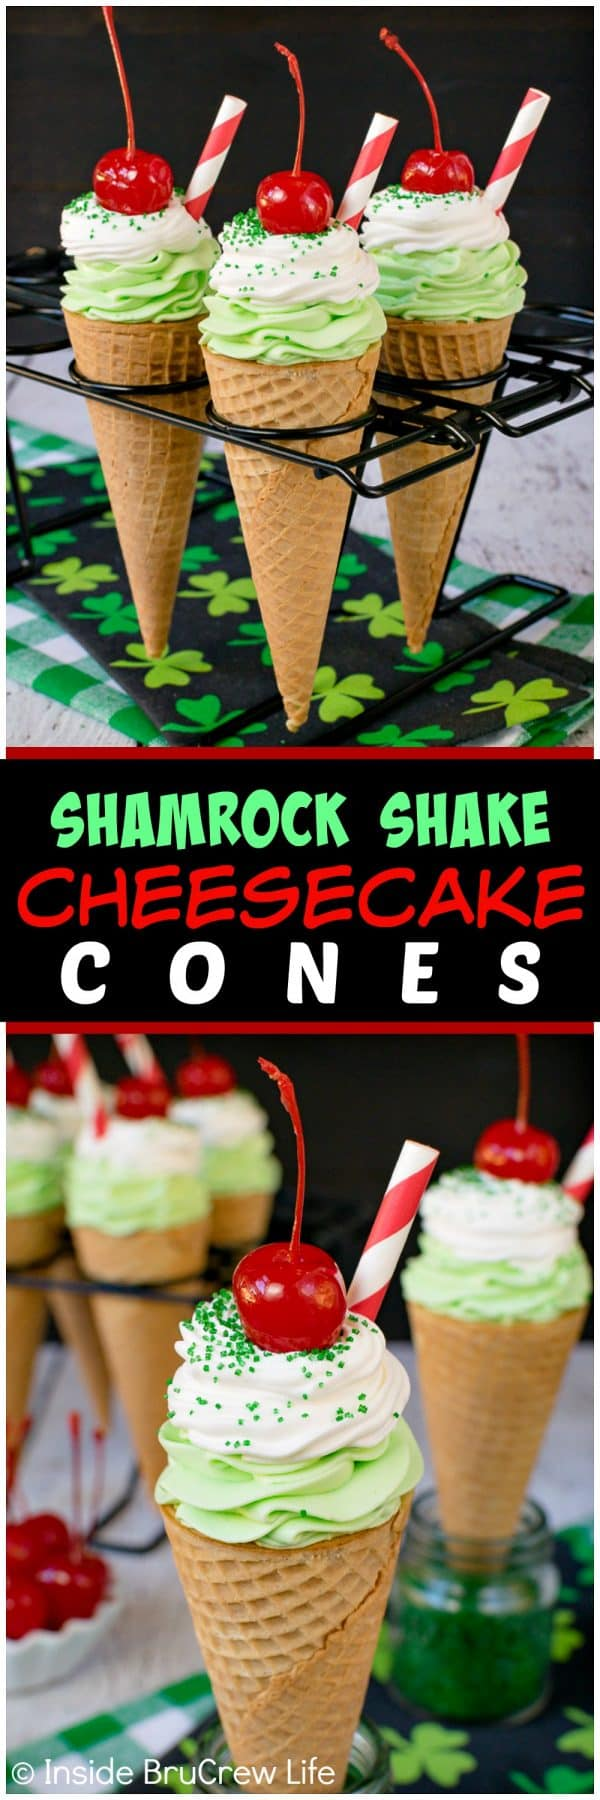 No Bake Shamrock Shake Cheesecake Cones - easy creamy mint cheesecake swirled in cones and topped with green sugar, cherries, and a straw makes these look like the popular drink. Easy no bake recipe to enjoy! #mint #shamrockshake #stpatricksday #nobakedesserts #recipe #cheesecake #smalldesserts